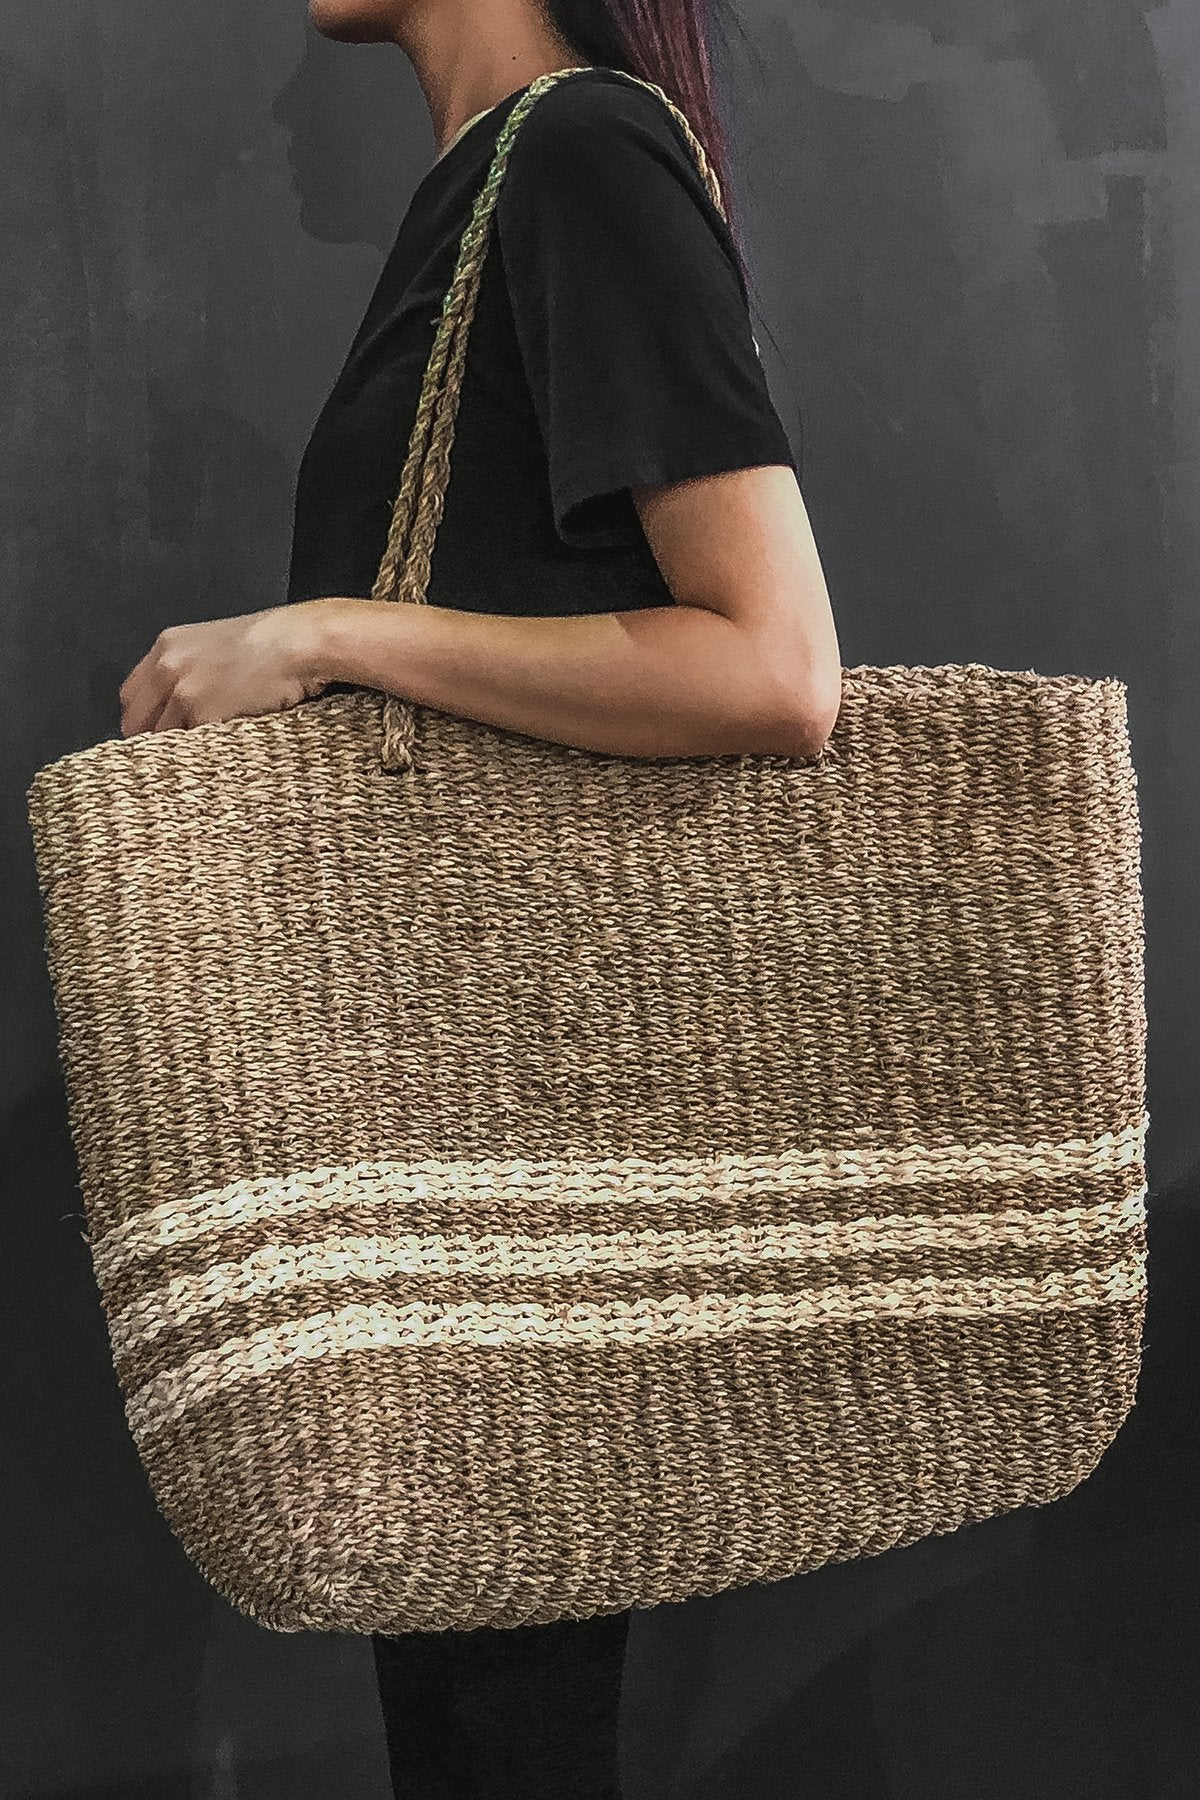 Extra Large 100% Woven Seagrass Bag - Natural Colour